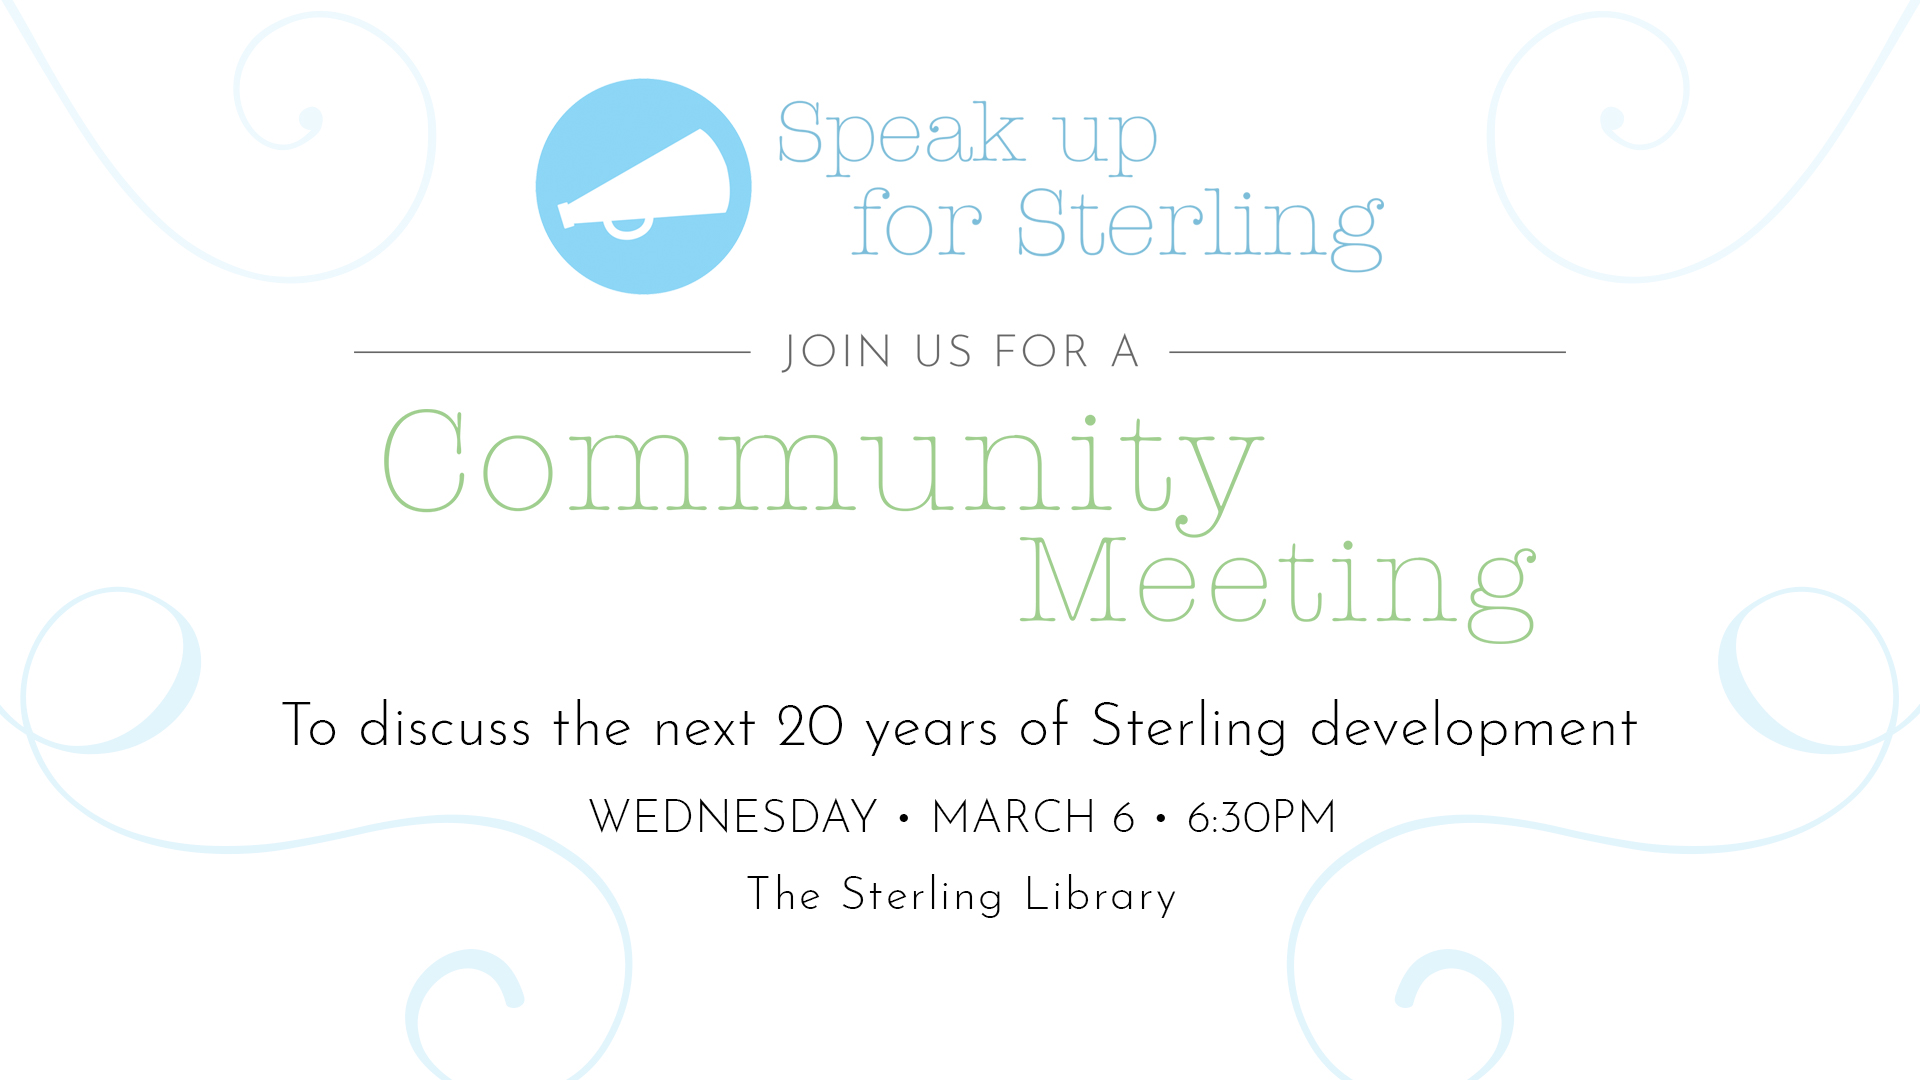 Speak up for Sterling - Join us for a Community Meeting